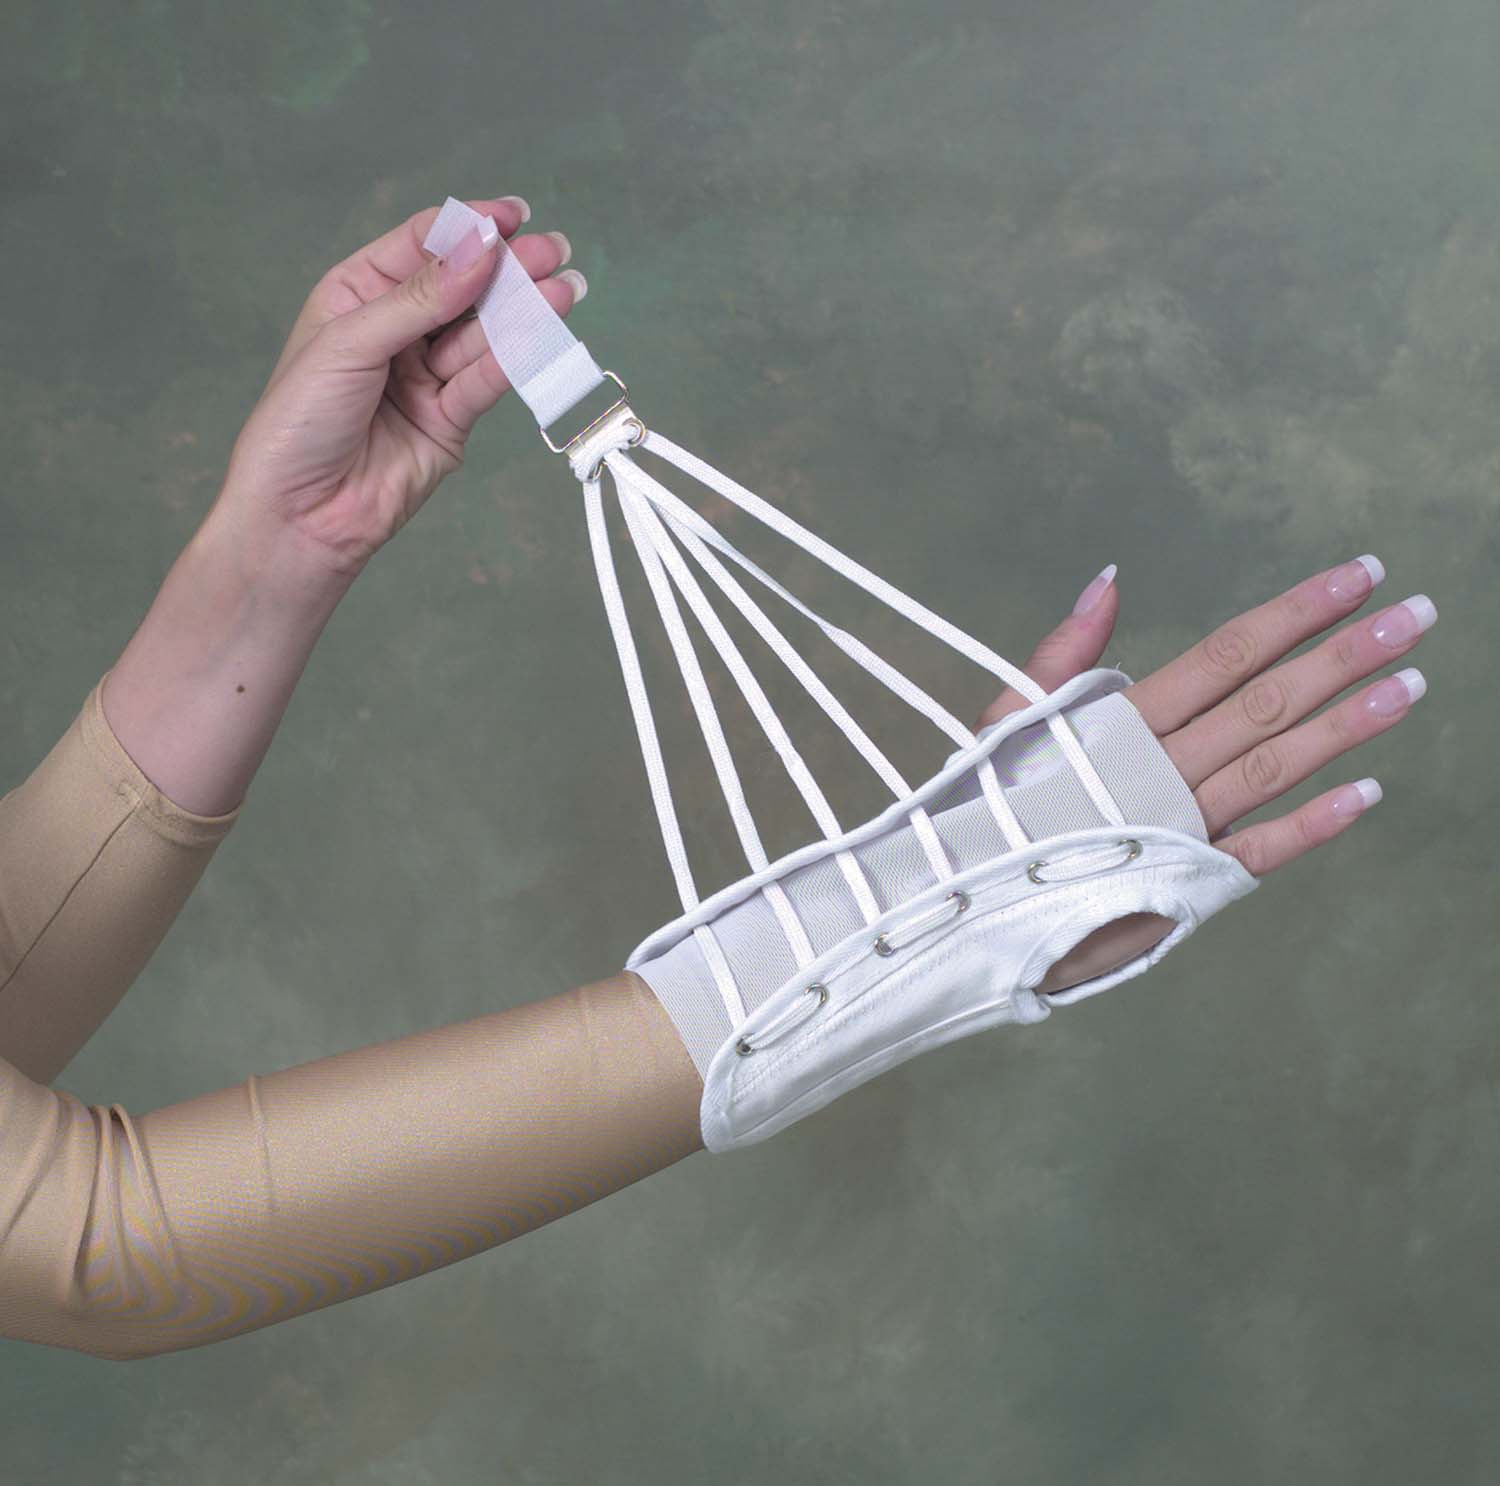 wrist-brace-cock-up-splint-large-633-6514-1923-lr.jpg